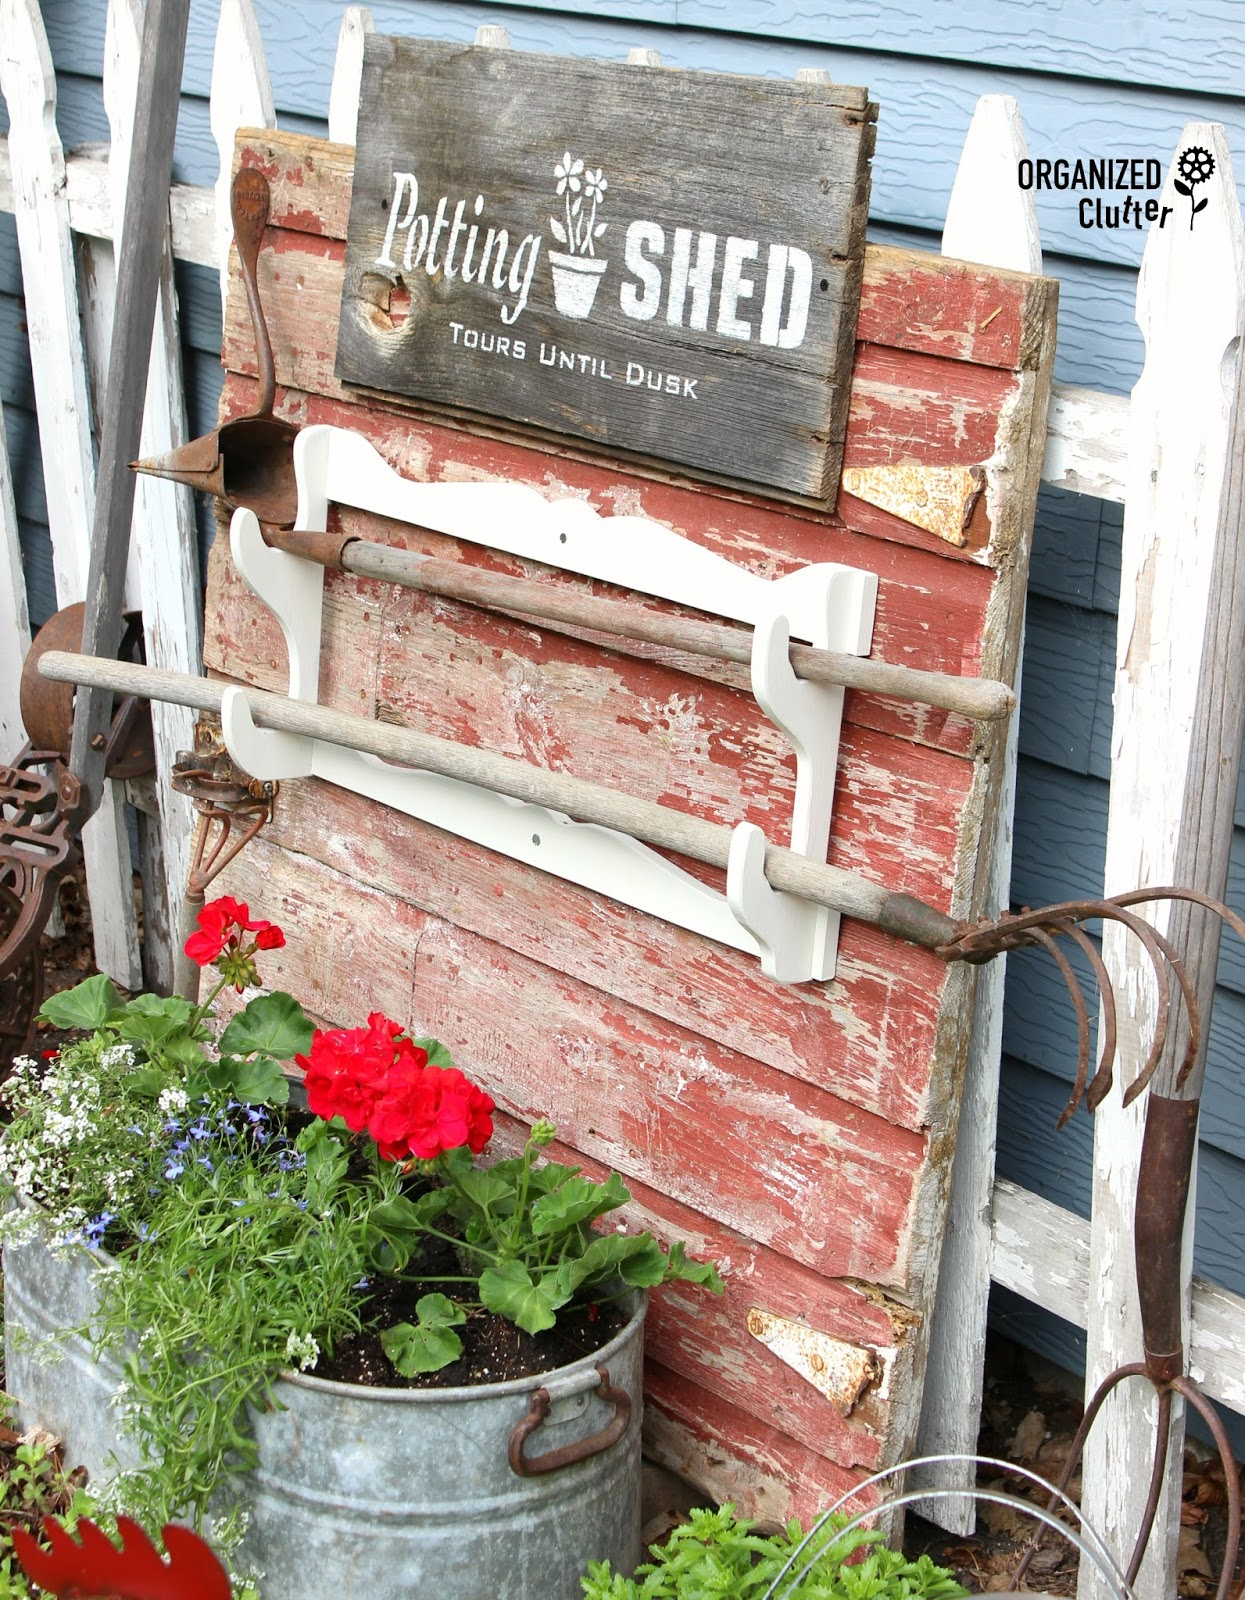 Superieur The Bottom Half Of An Old Barn Dutch Type Door Became The Perfect Backdrop  For A Potting Shed Sign Stenciled With A New Garden Stencil From Funky Junk  ...